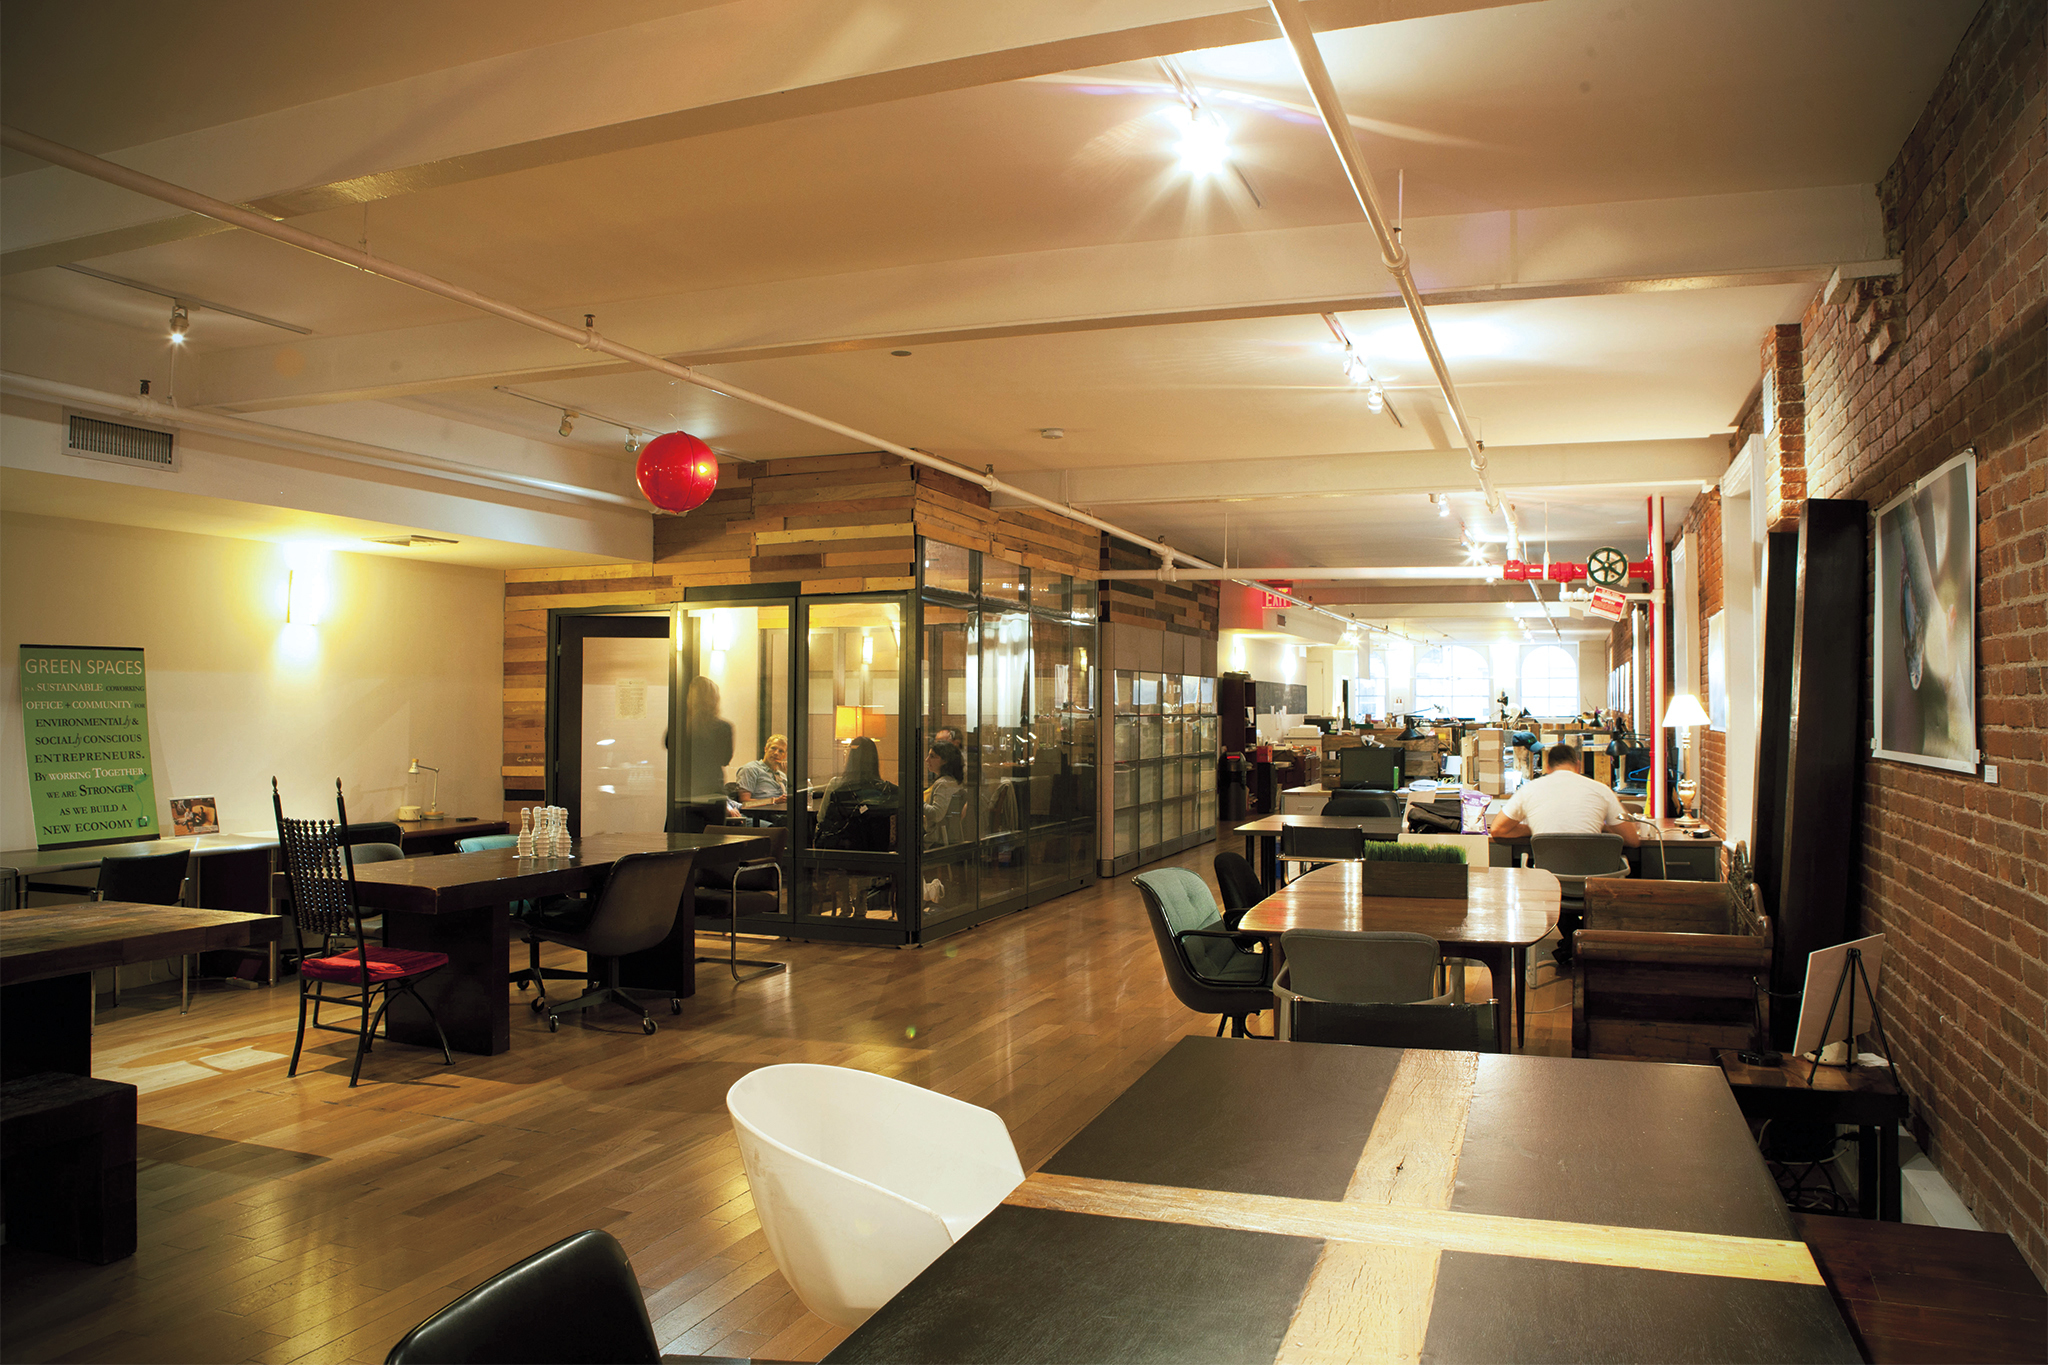 NYC offices: coolest co-working spaces in New York City